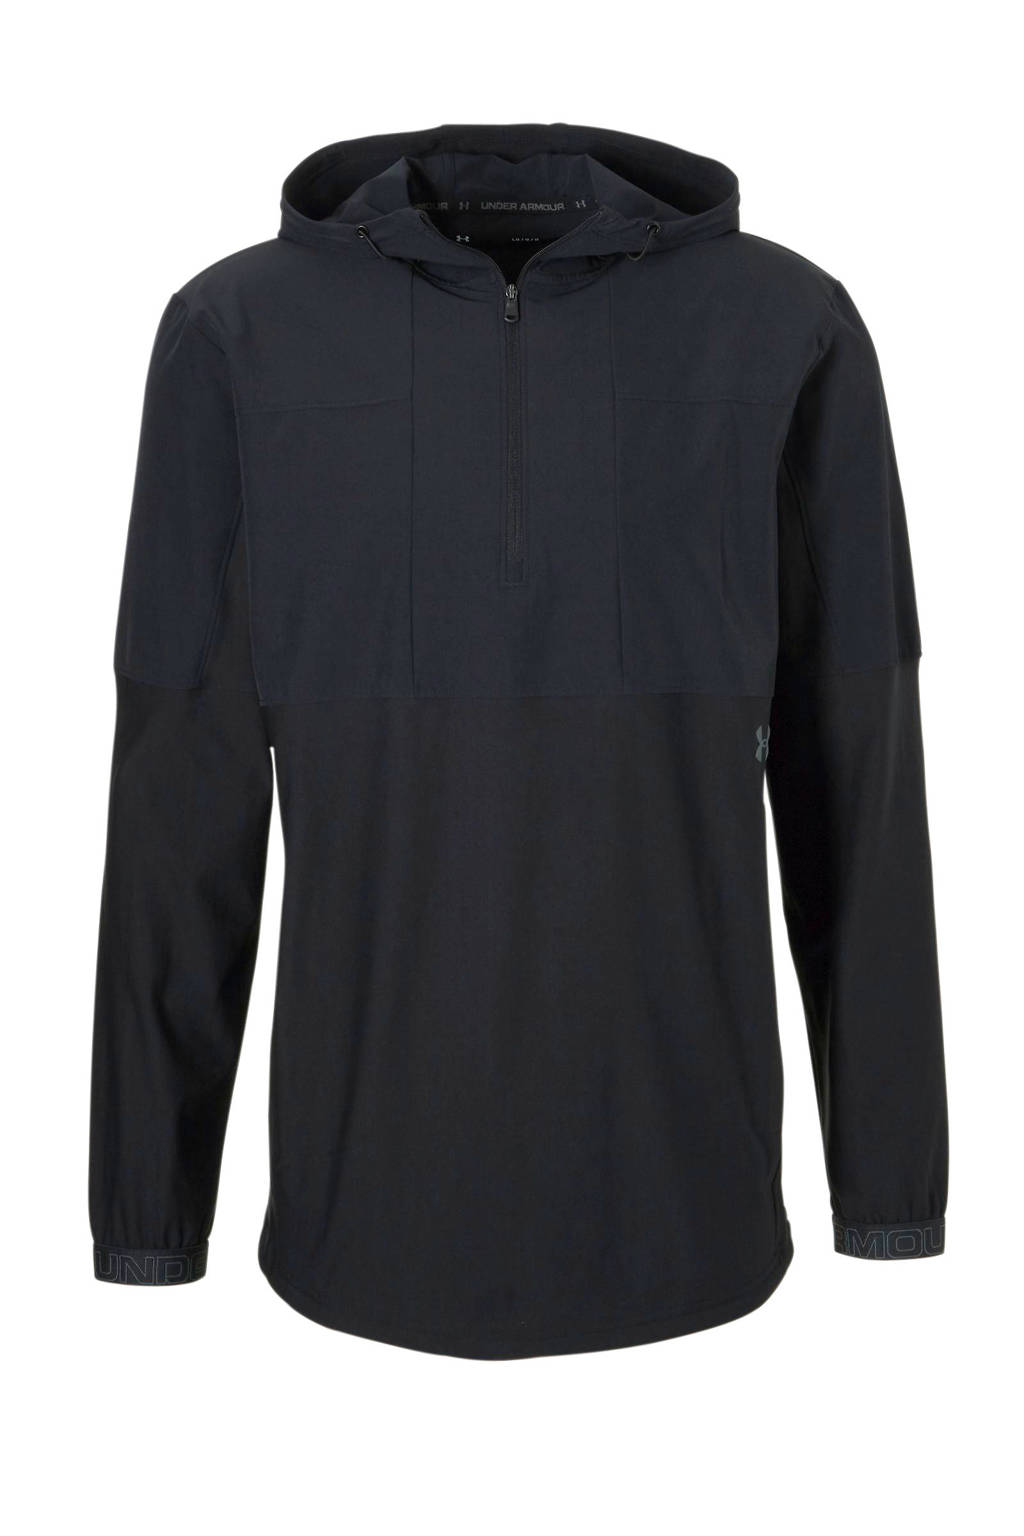 Under Armour   sportsweater, Zwart